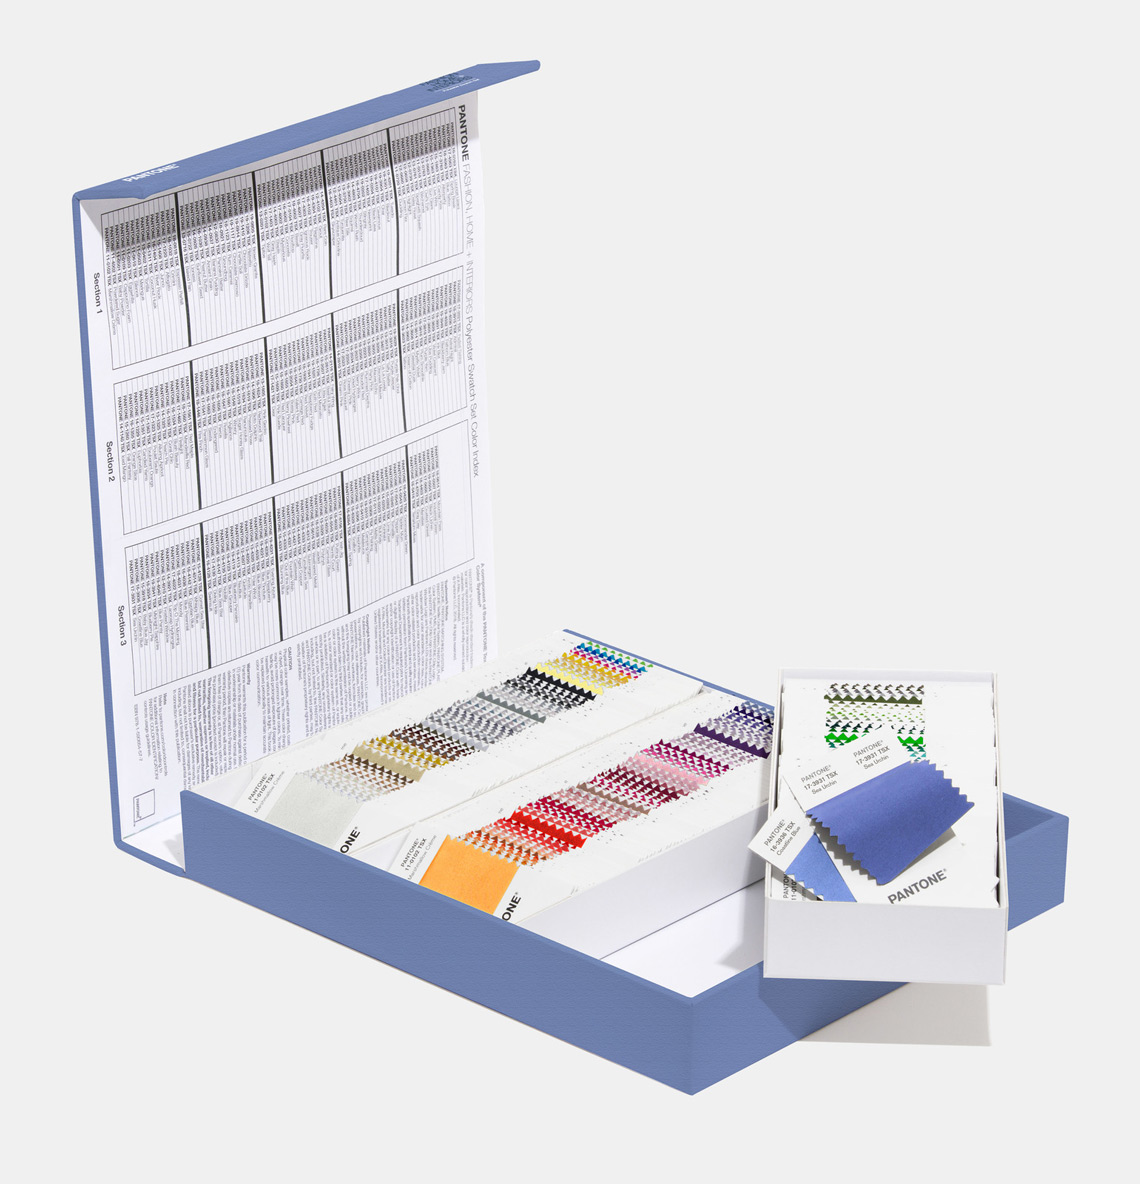 Pantone Polyester Swatch Set storage case